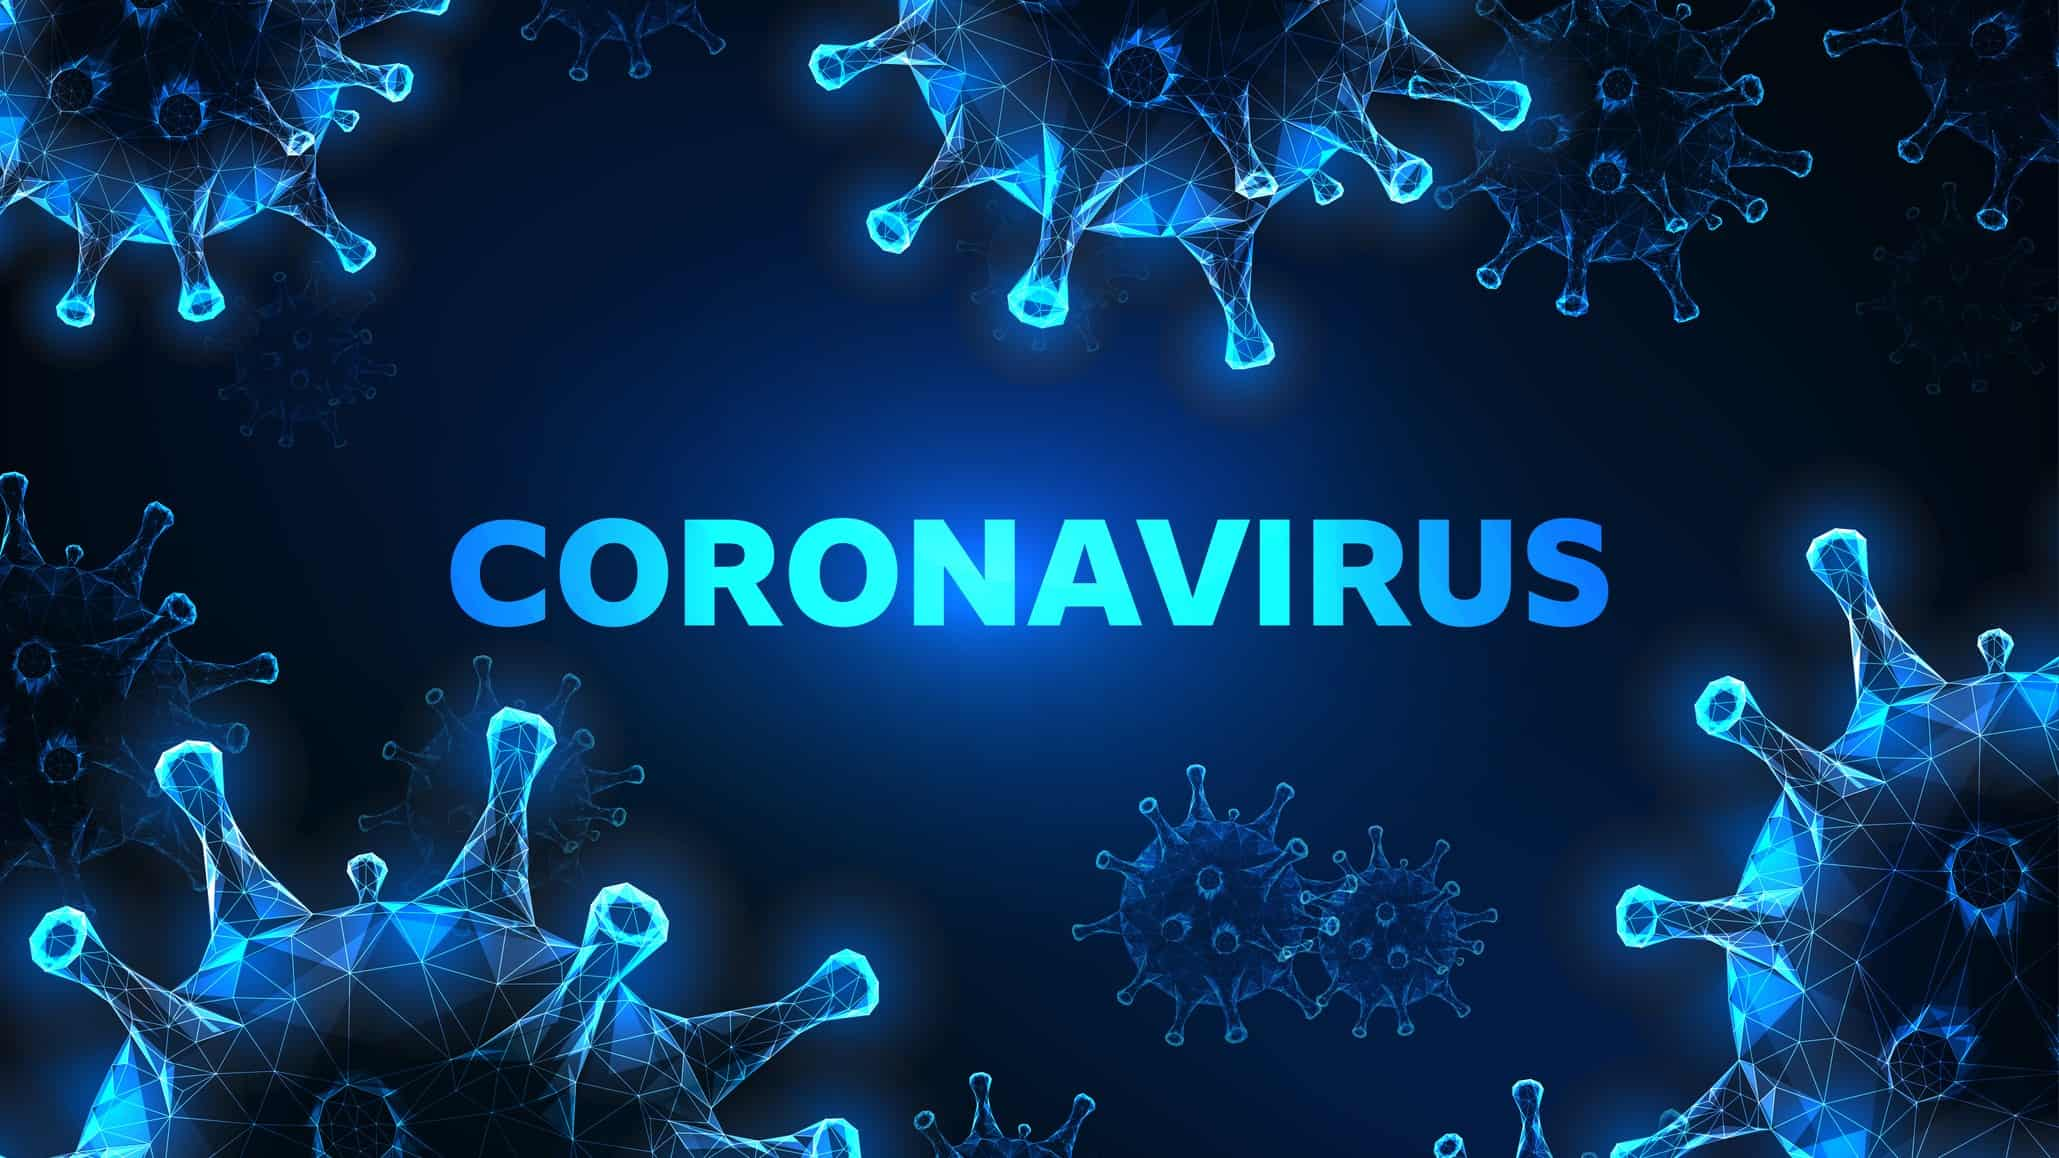 Black & blue background with text coronavirus